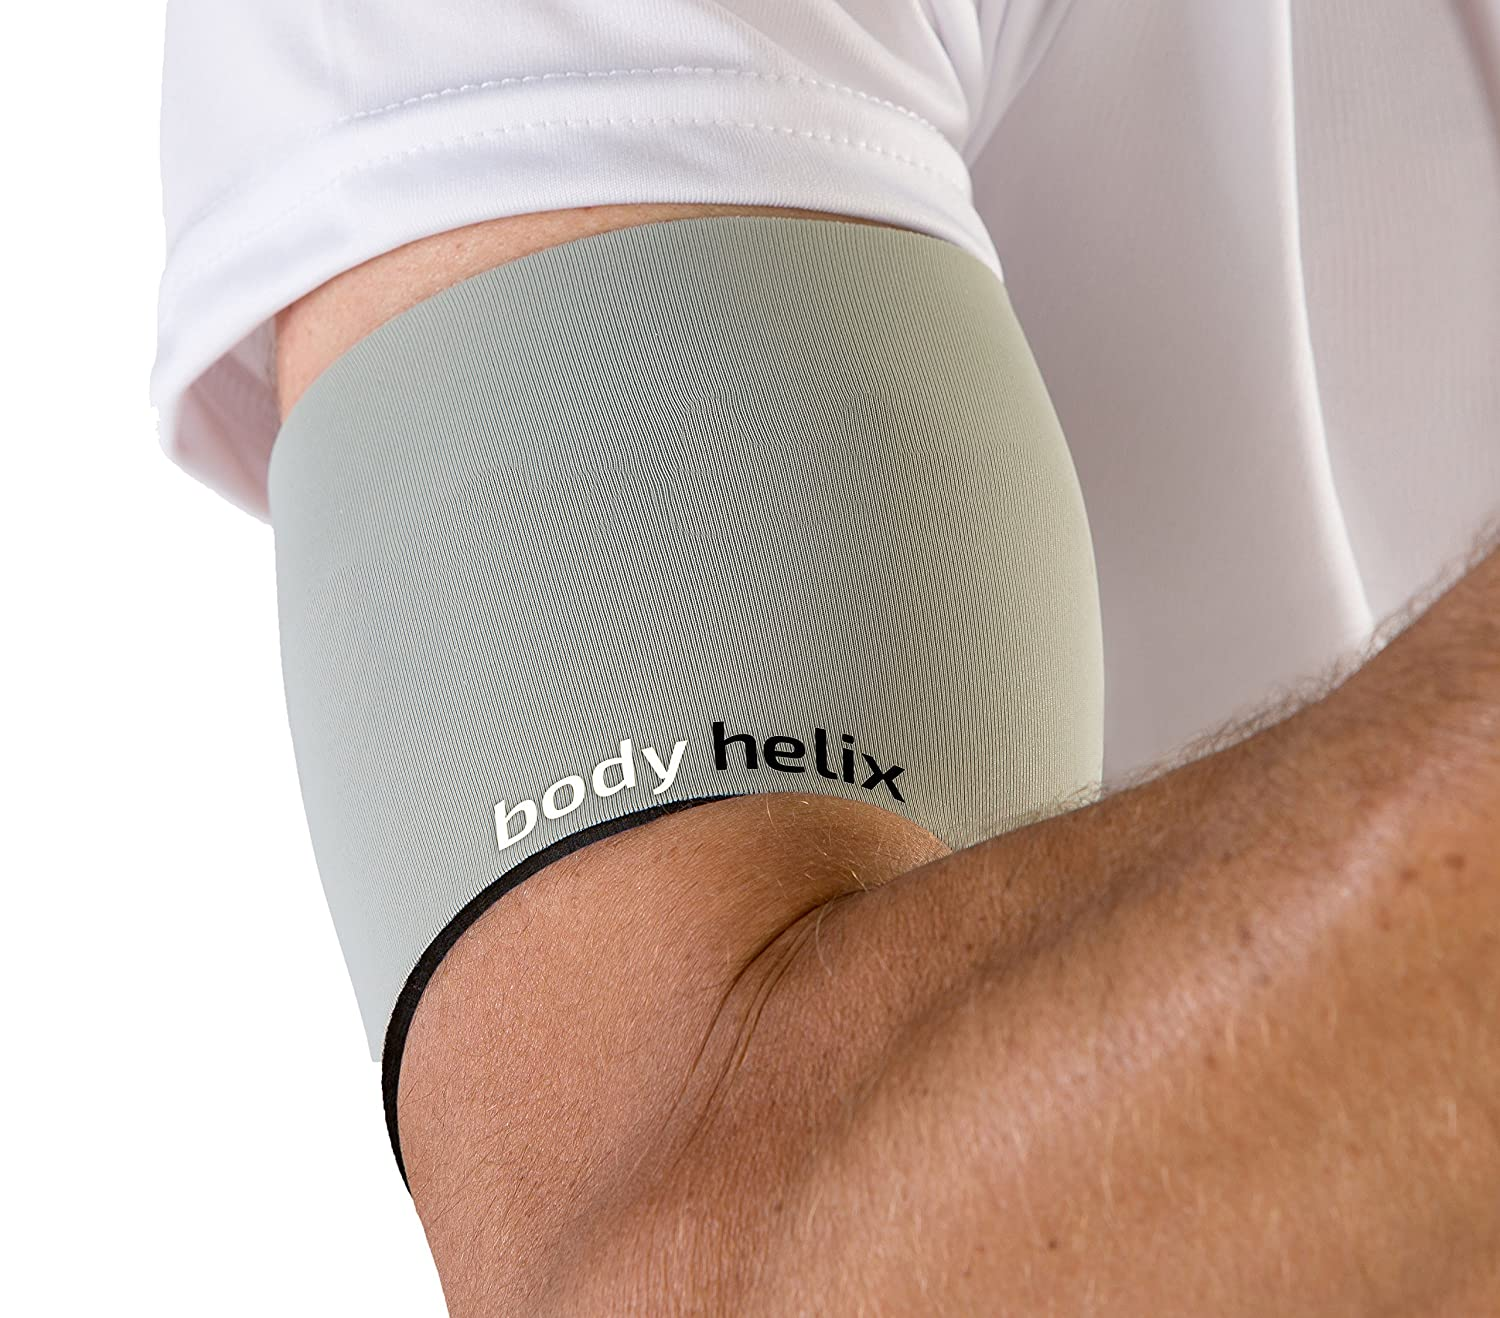 Silver XSmall  Bicep 7.5   8.5  Body Helix Arm Compression Sleeve Wrap; Pain Relief for Bicep and Tricep Muscle Strains